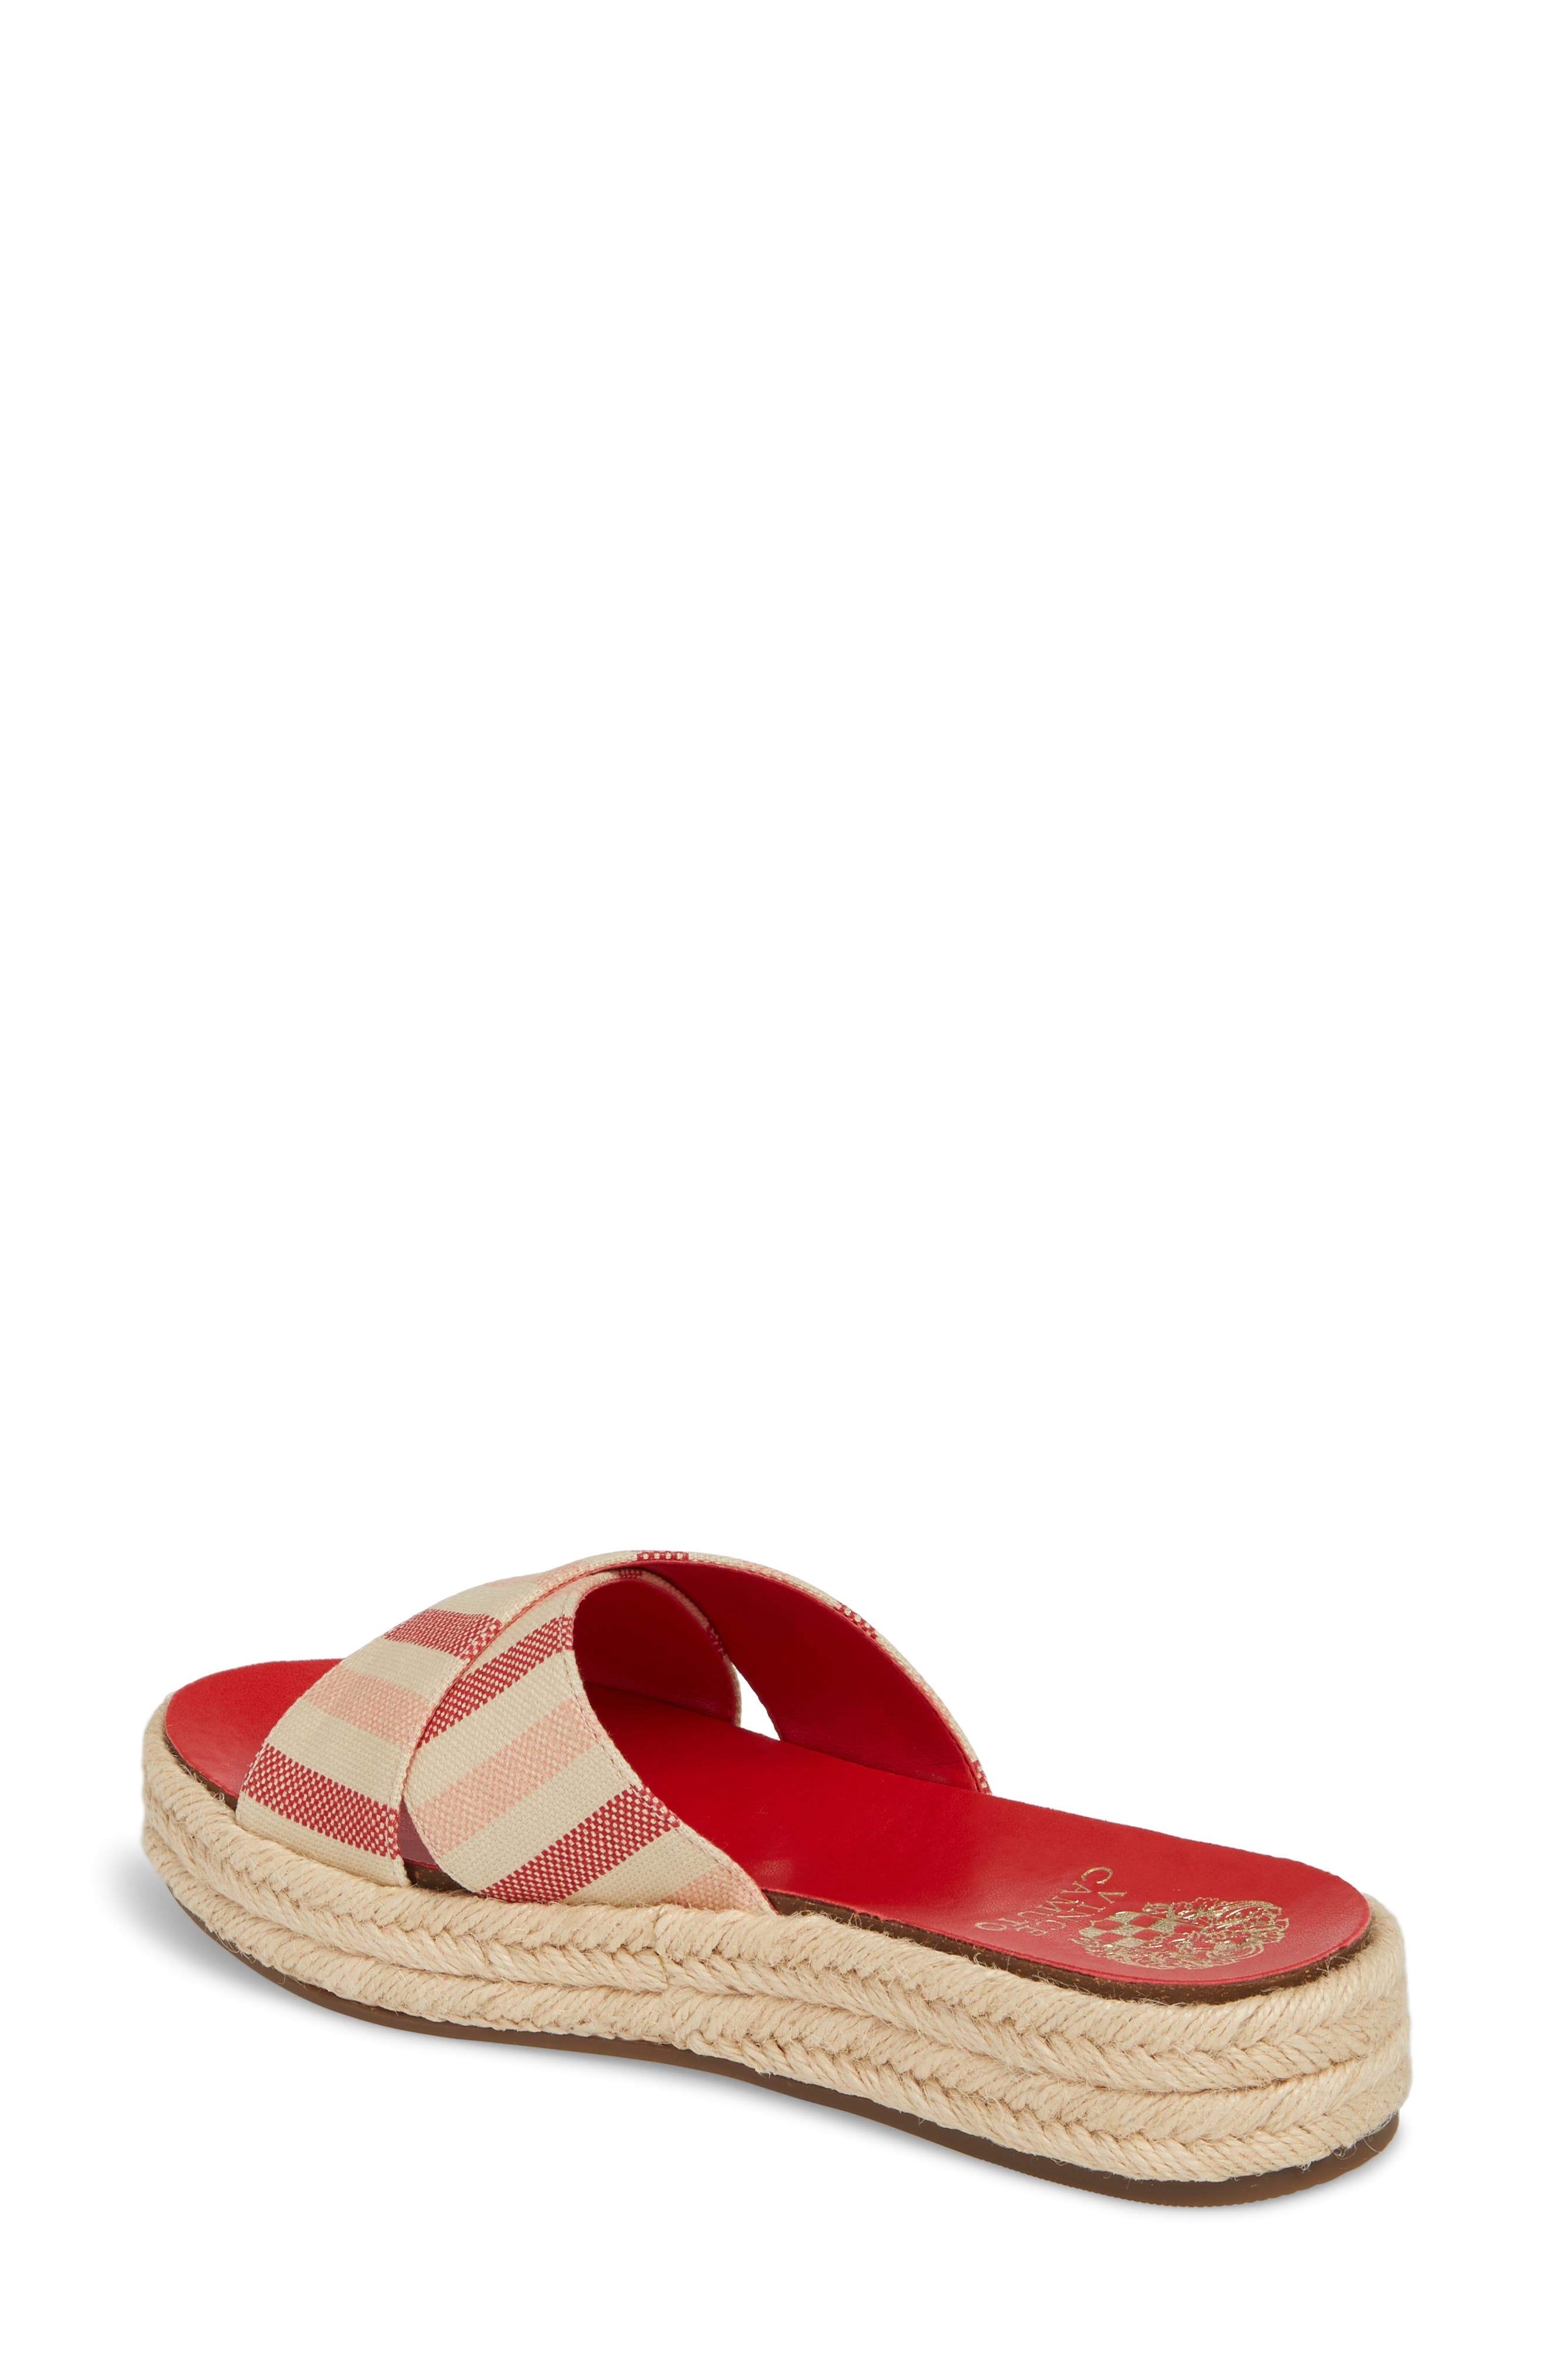 Carran Platform Sandal,                             Alternate thumbnail 2, color,                             Red Hot Rio Stripe Canvas